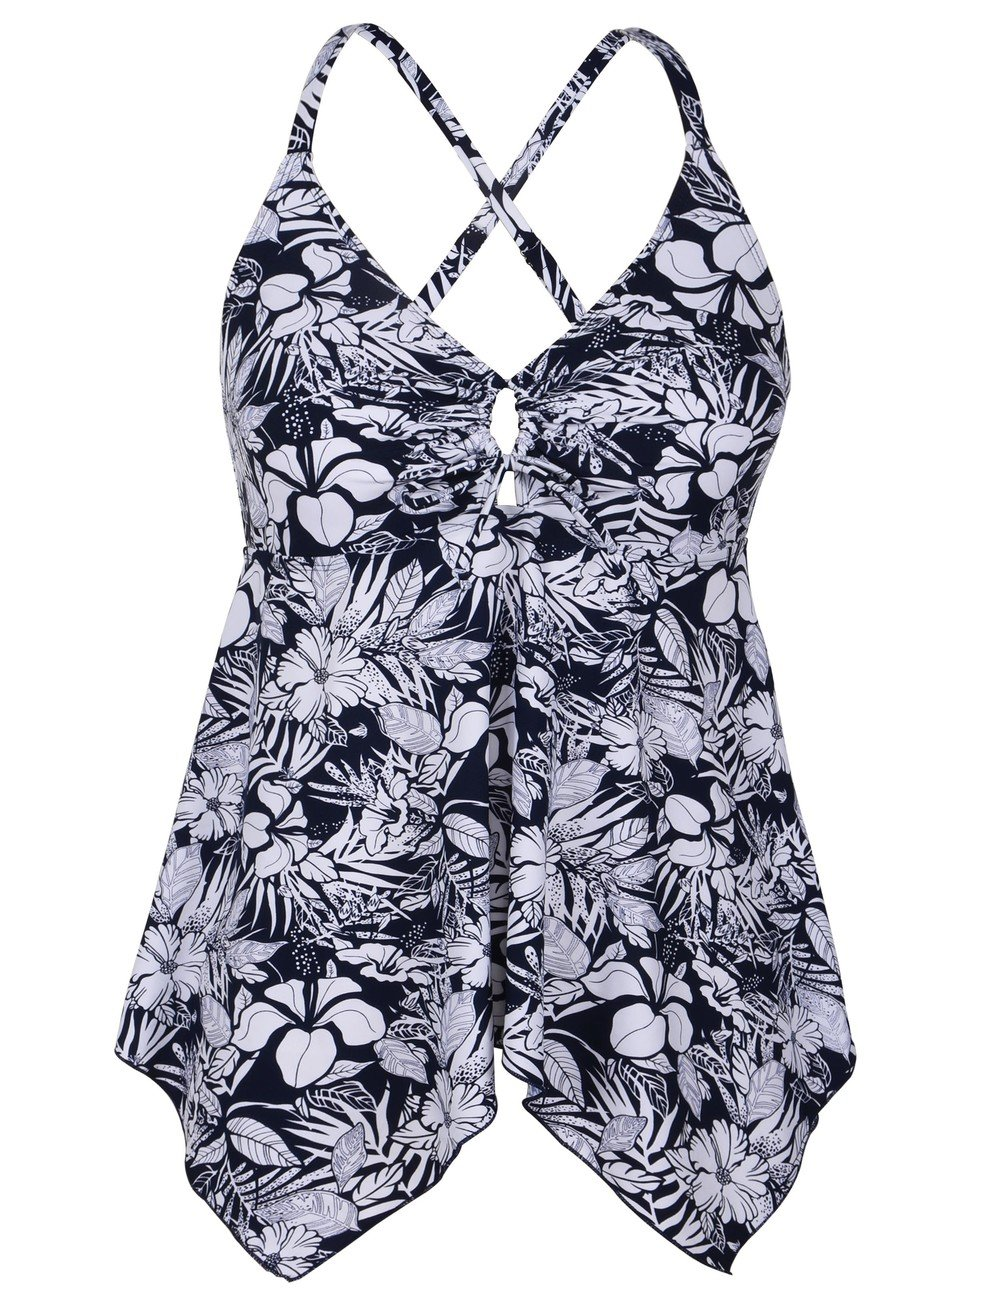 Firpearl Women's Black Floral Flowy Swimsuit Crossback Plus Size Tankini Top US22 White Blue Floral